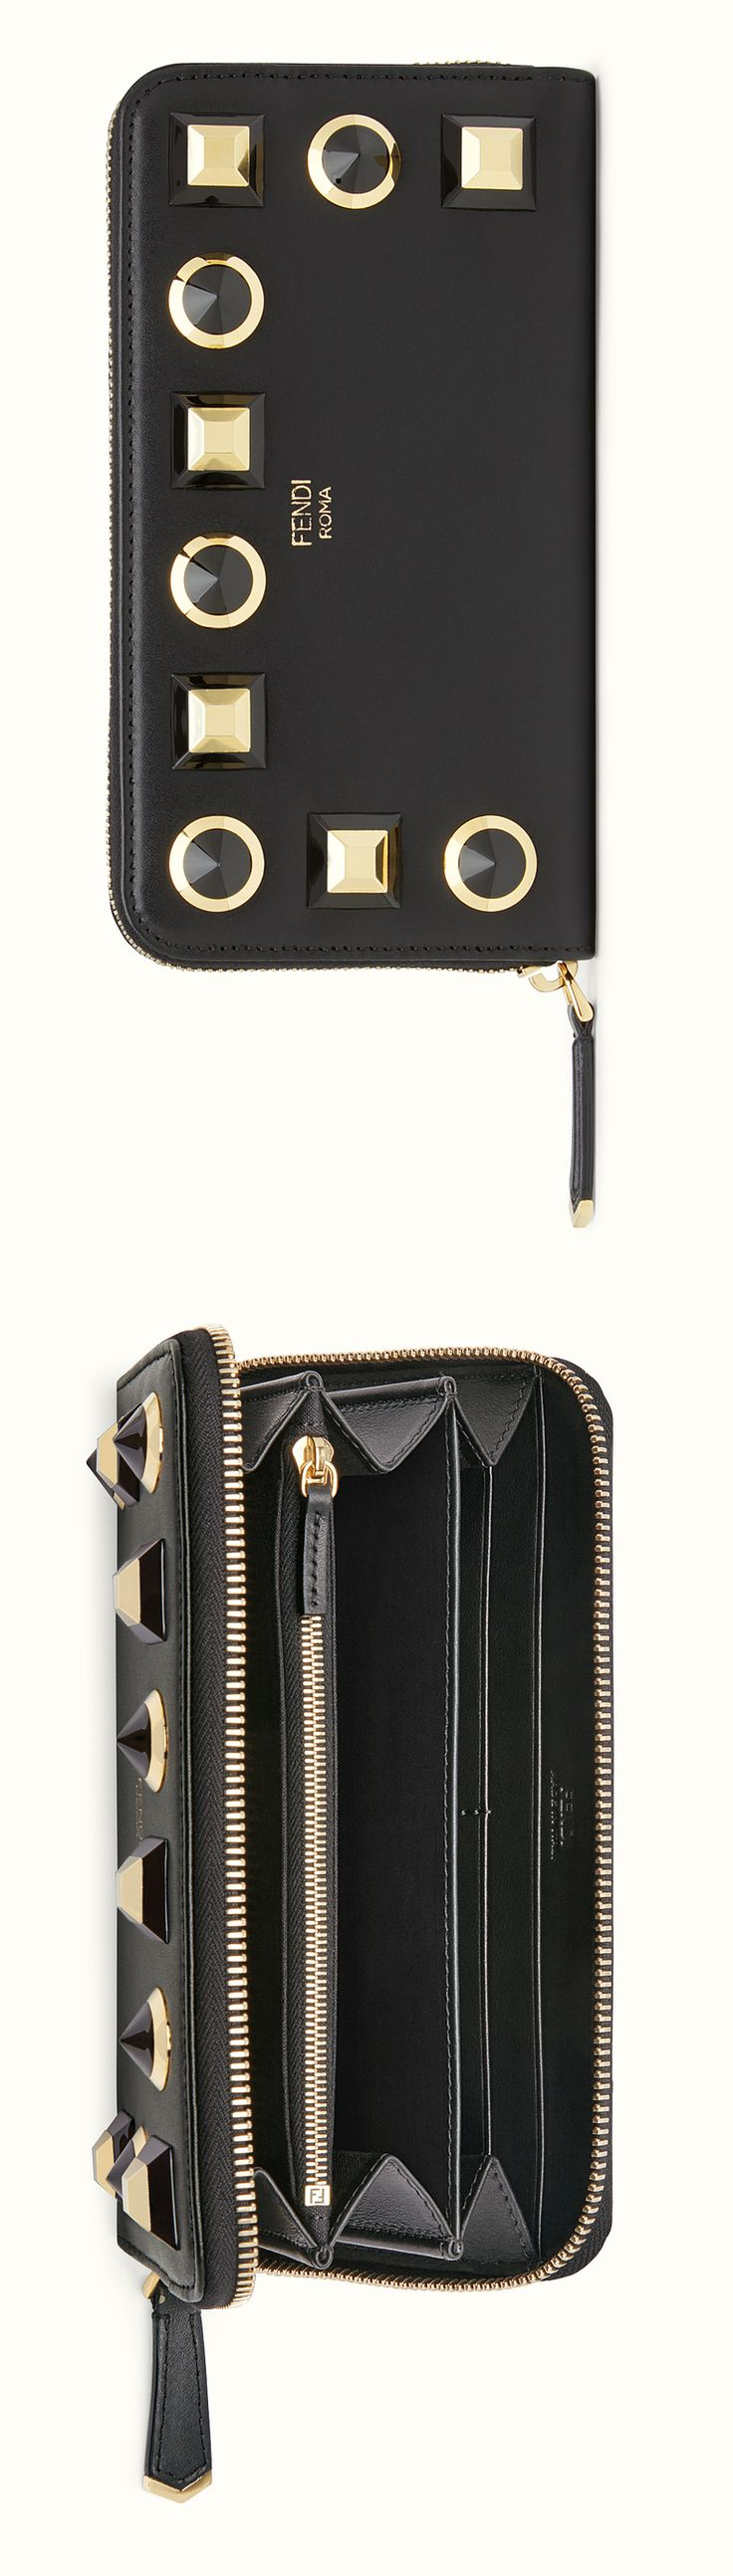 FENDI WALLET - Studded black leather zip-around